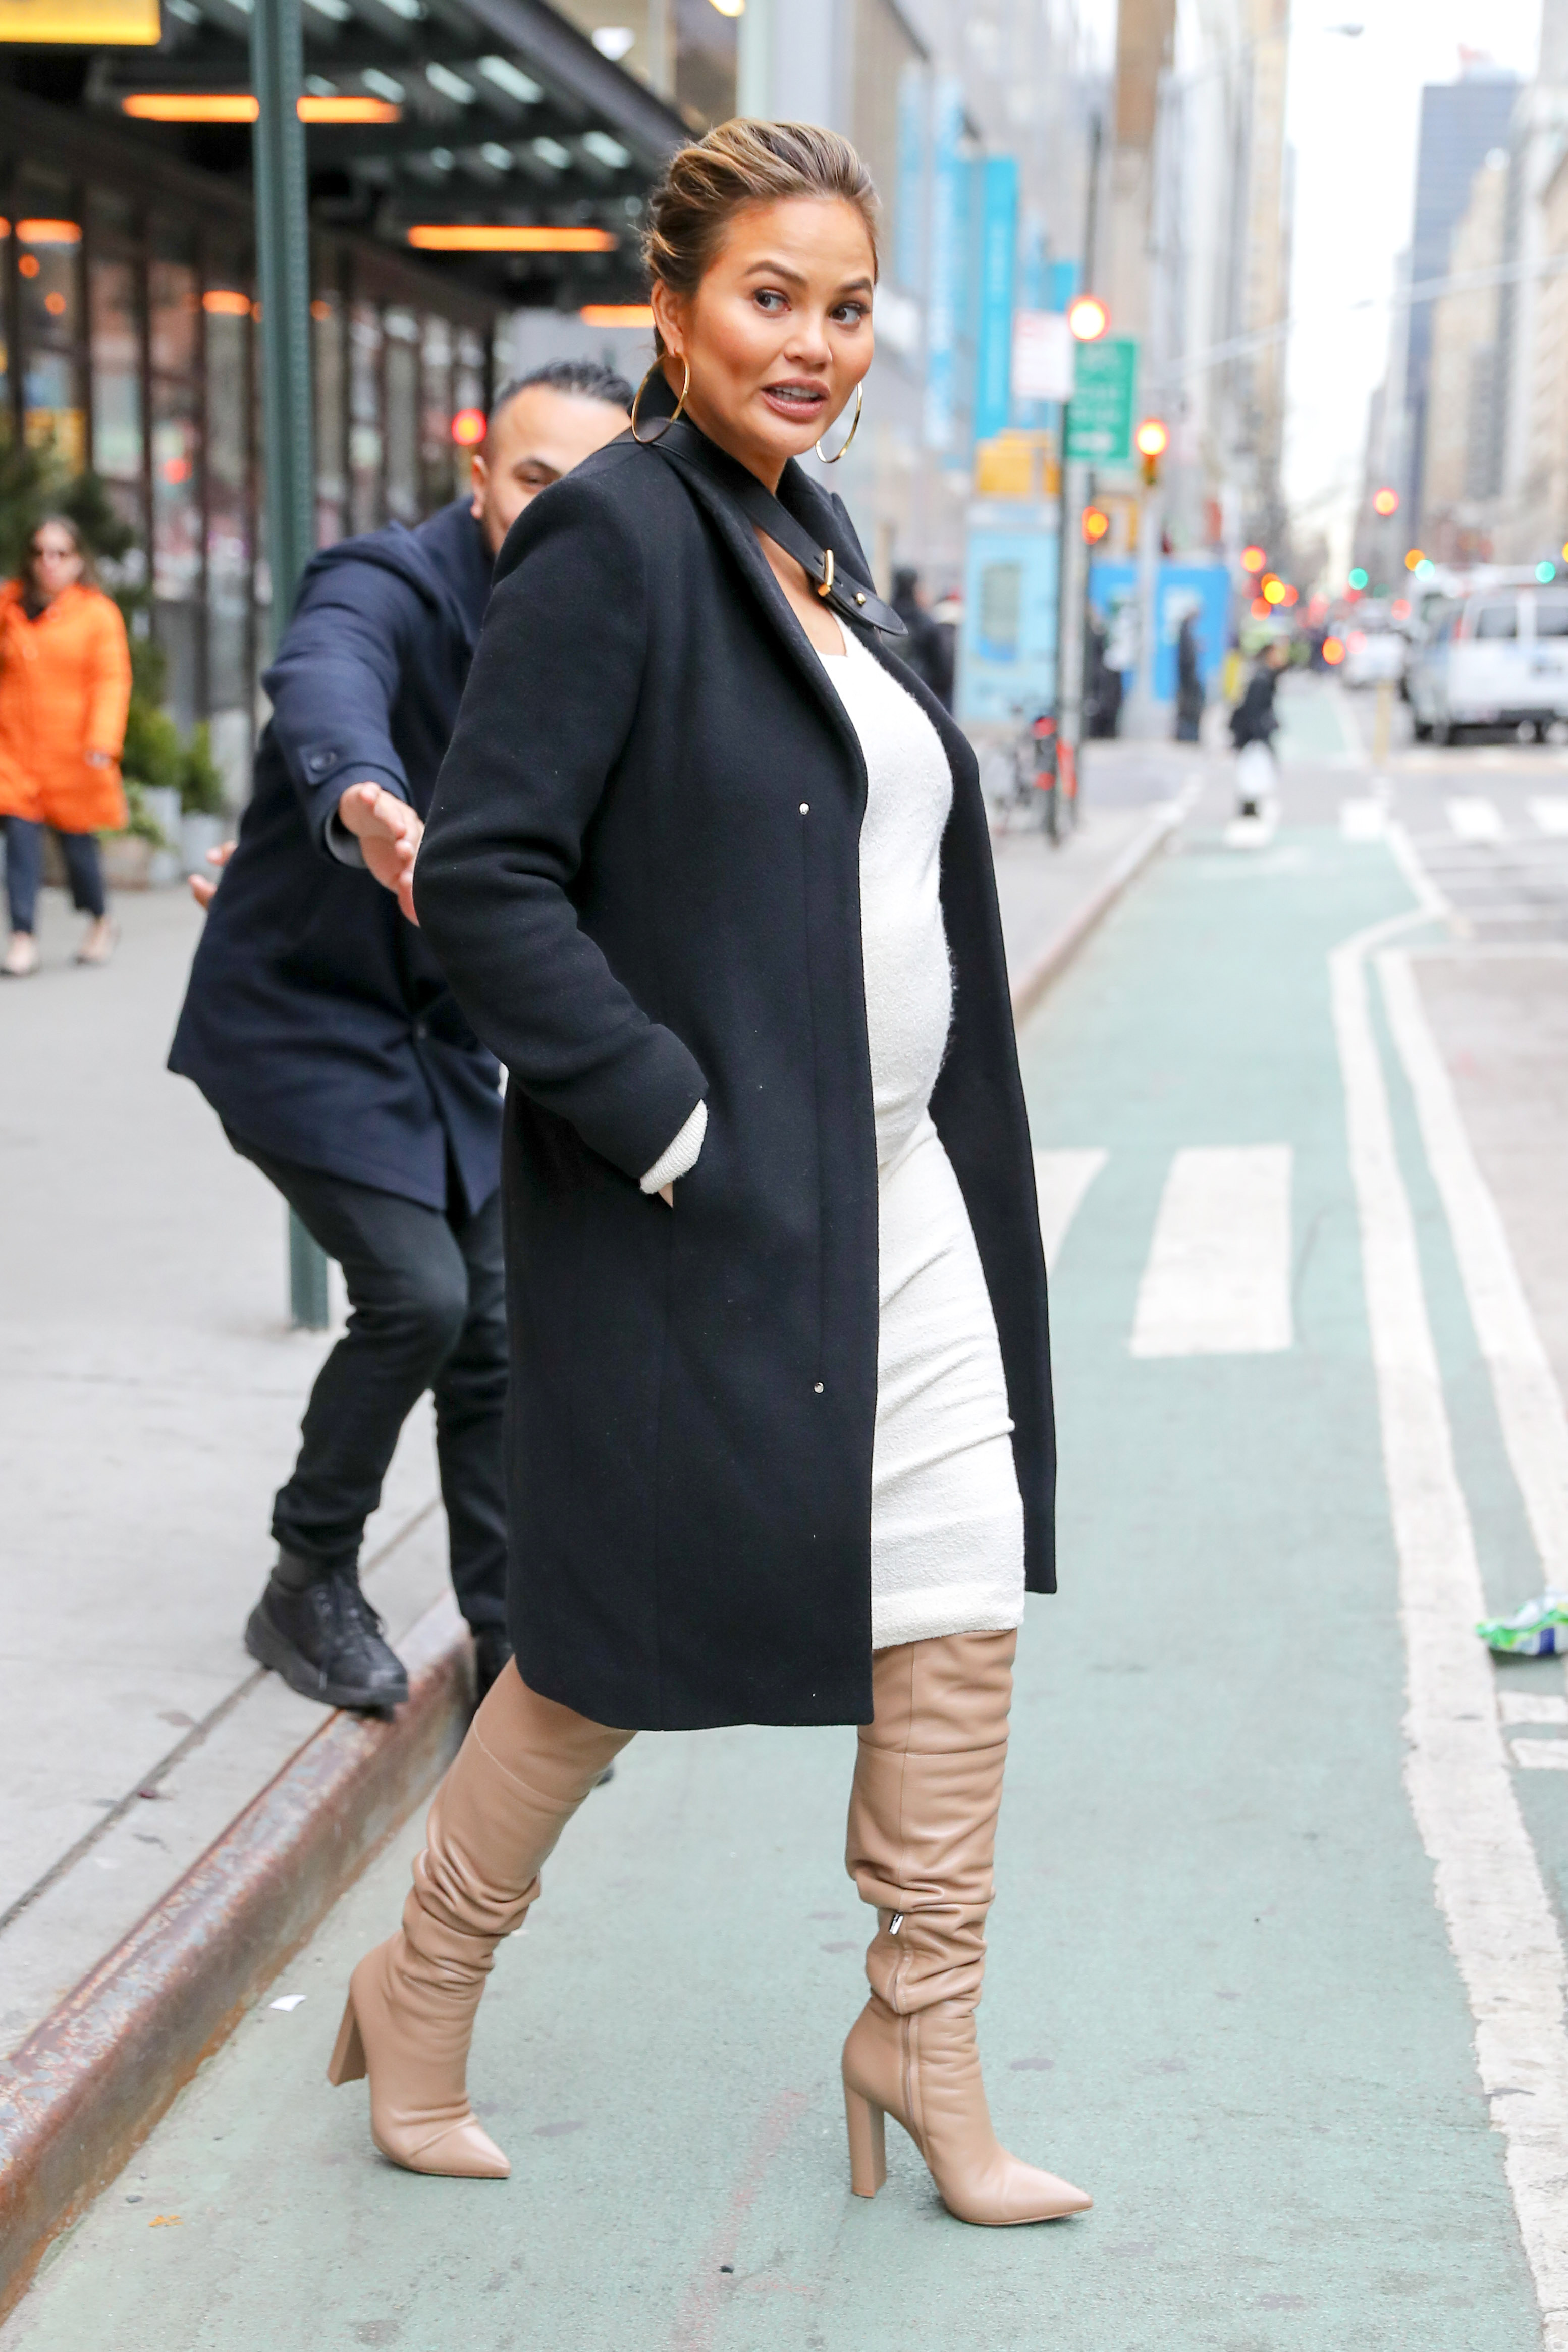 Chrissy Teigen was spotted leaving a meting in New York City, Chrissy was been help by a doorman from a cyclists <P> Pictured: Chrissy Teigen <B>Ref: SPL1676583  280318  </B><BR/> Picture by: Felipe Ramales / Splash News<BR/> </P><P> <B>Splash News and Pictures</B><BR/> Los Angeles:310-821-2666<BR/> New York:212-619-2666<BR/> London:870-934-2666<BR/> <span id=